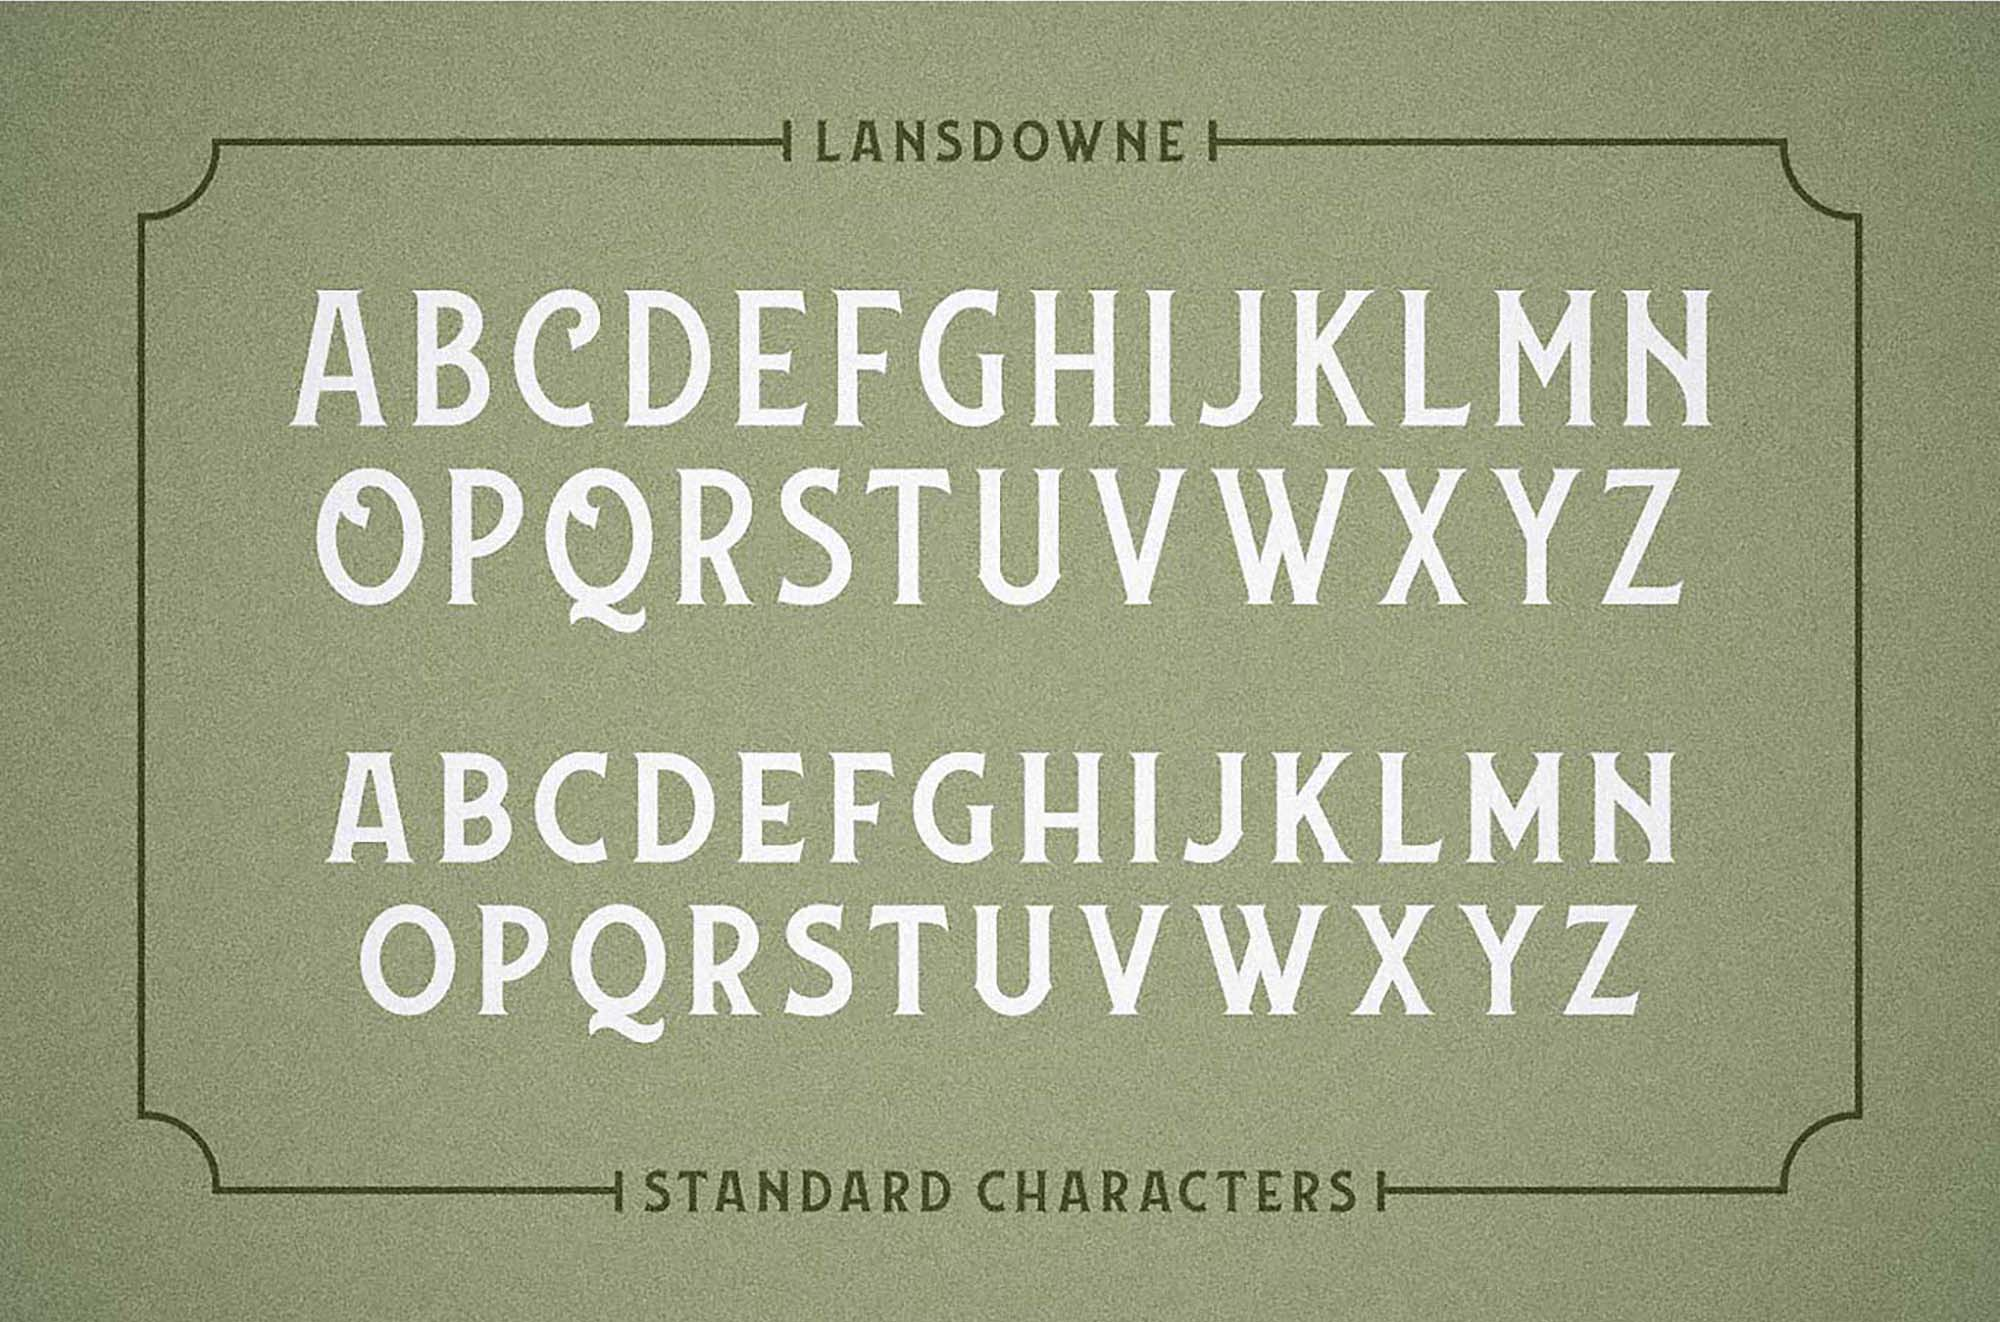 Lansdowne Font - Characters